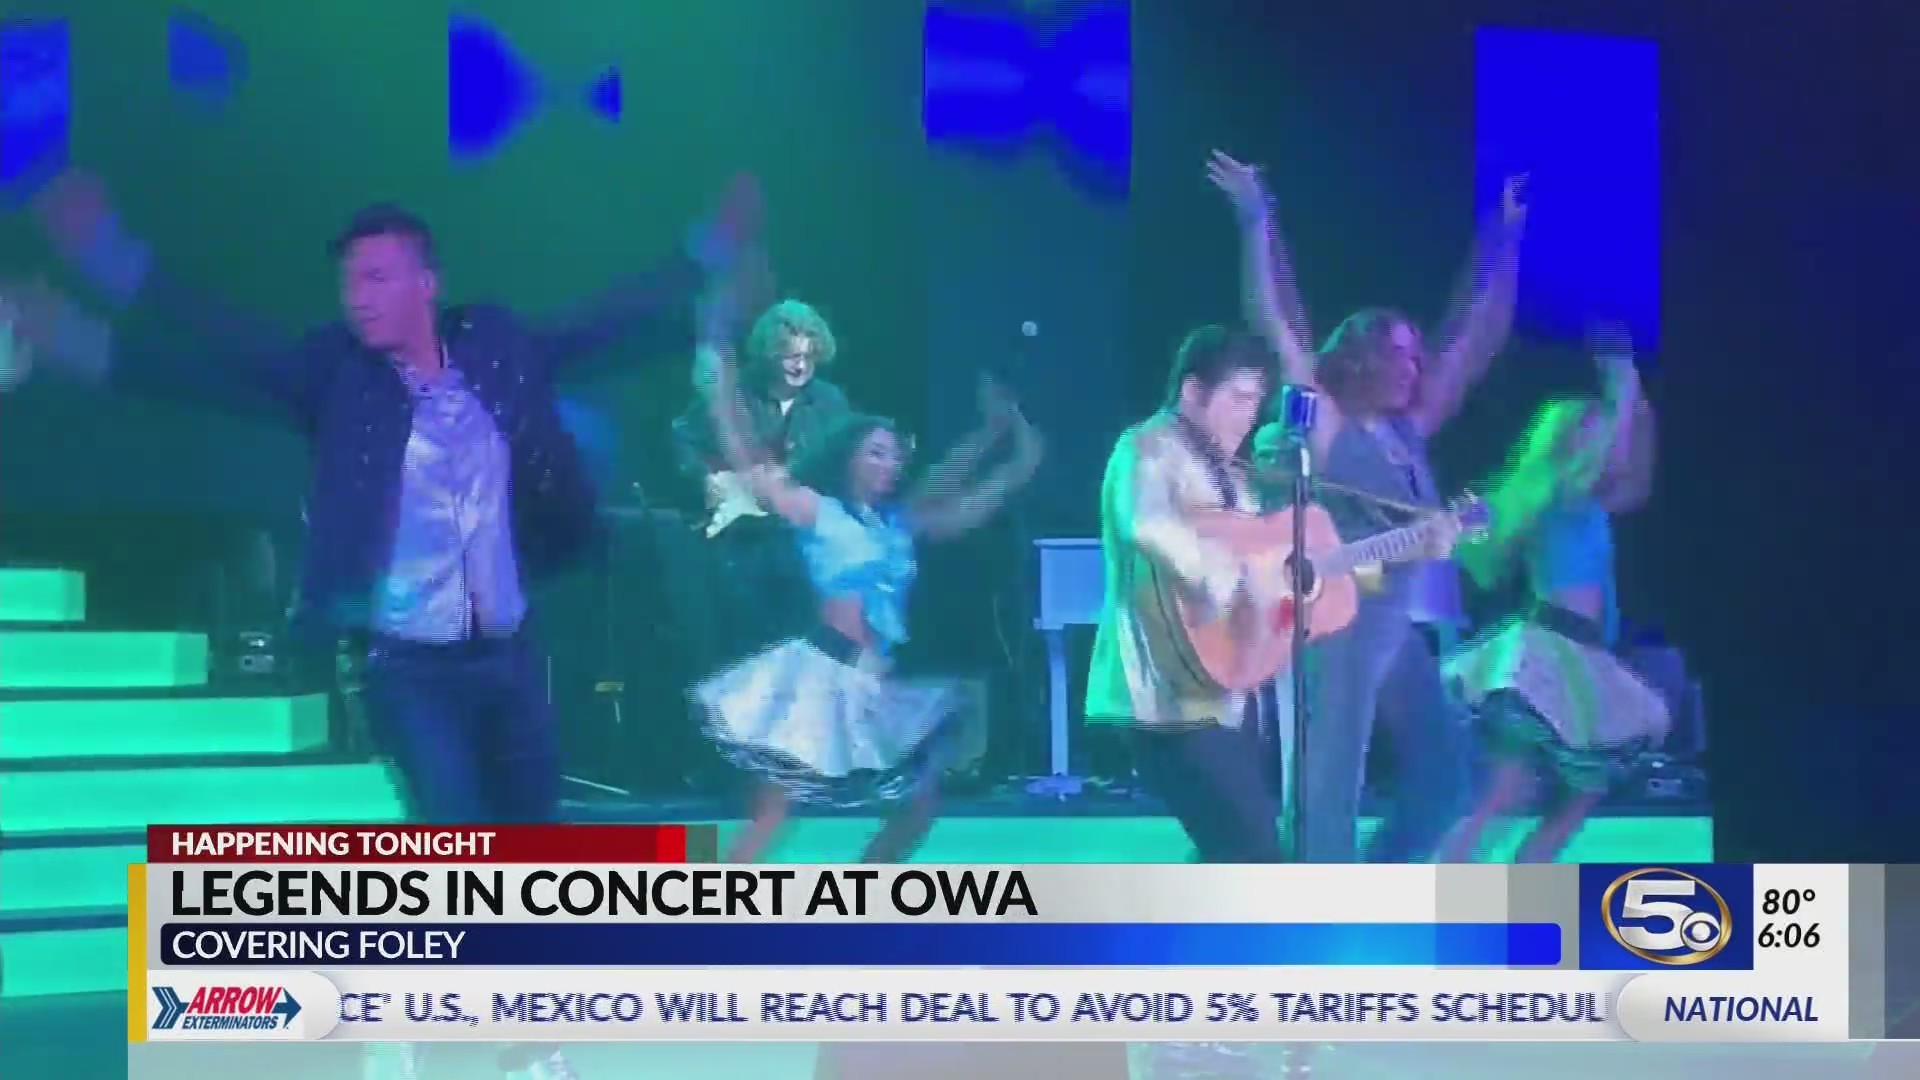 PREVIEW: Legends in Concert opens Friday at OWA